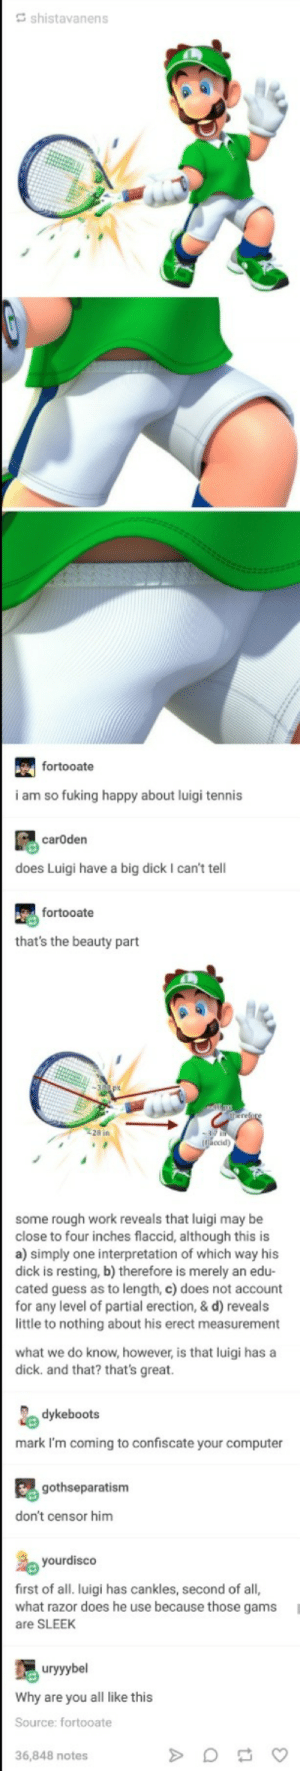 Big Dick, Work, and Computer: Gshistavanens  fortooate  i am so fuking happy about luigi tennis  carOden  does Luigi have a big dick I can't tell  fortooate  that's the beauty part  some rough work reveals that luigi may be  close to four inches flaccid, although this is  a) simply one interpretation of which way his  dick is resting, b) therefore is merely an edu-  cated guess as to length, c) does not account  for any level of partial erection, & d) reveals  little to nothing about his erect measurement  what we do know, however, is that luigi has a  dick. and that? that's great.  dykeboots  mark I'm coming to confiscate your computer  gothseparatism  don't censor him  yourdisco  first of all. luigi has cankles, second of all,  what razor does he use because those gams  are SLEEK  uryyybel  Why are you all like this  Source: fortooate  36,848 notes The Science of Luigis Bulge